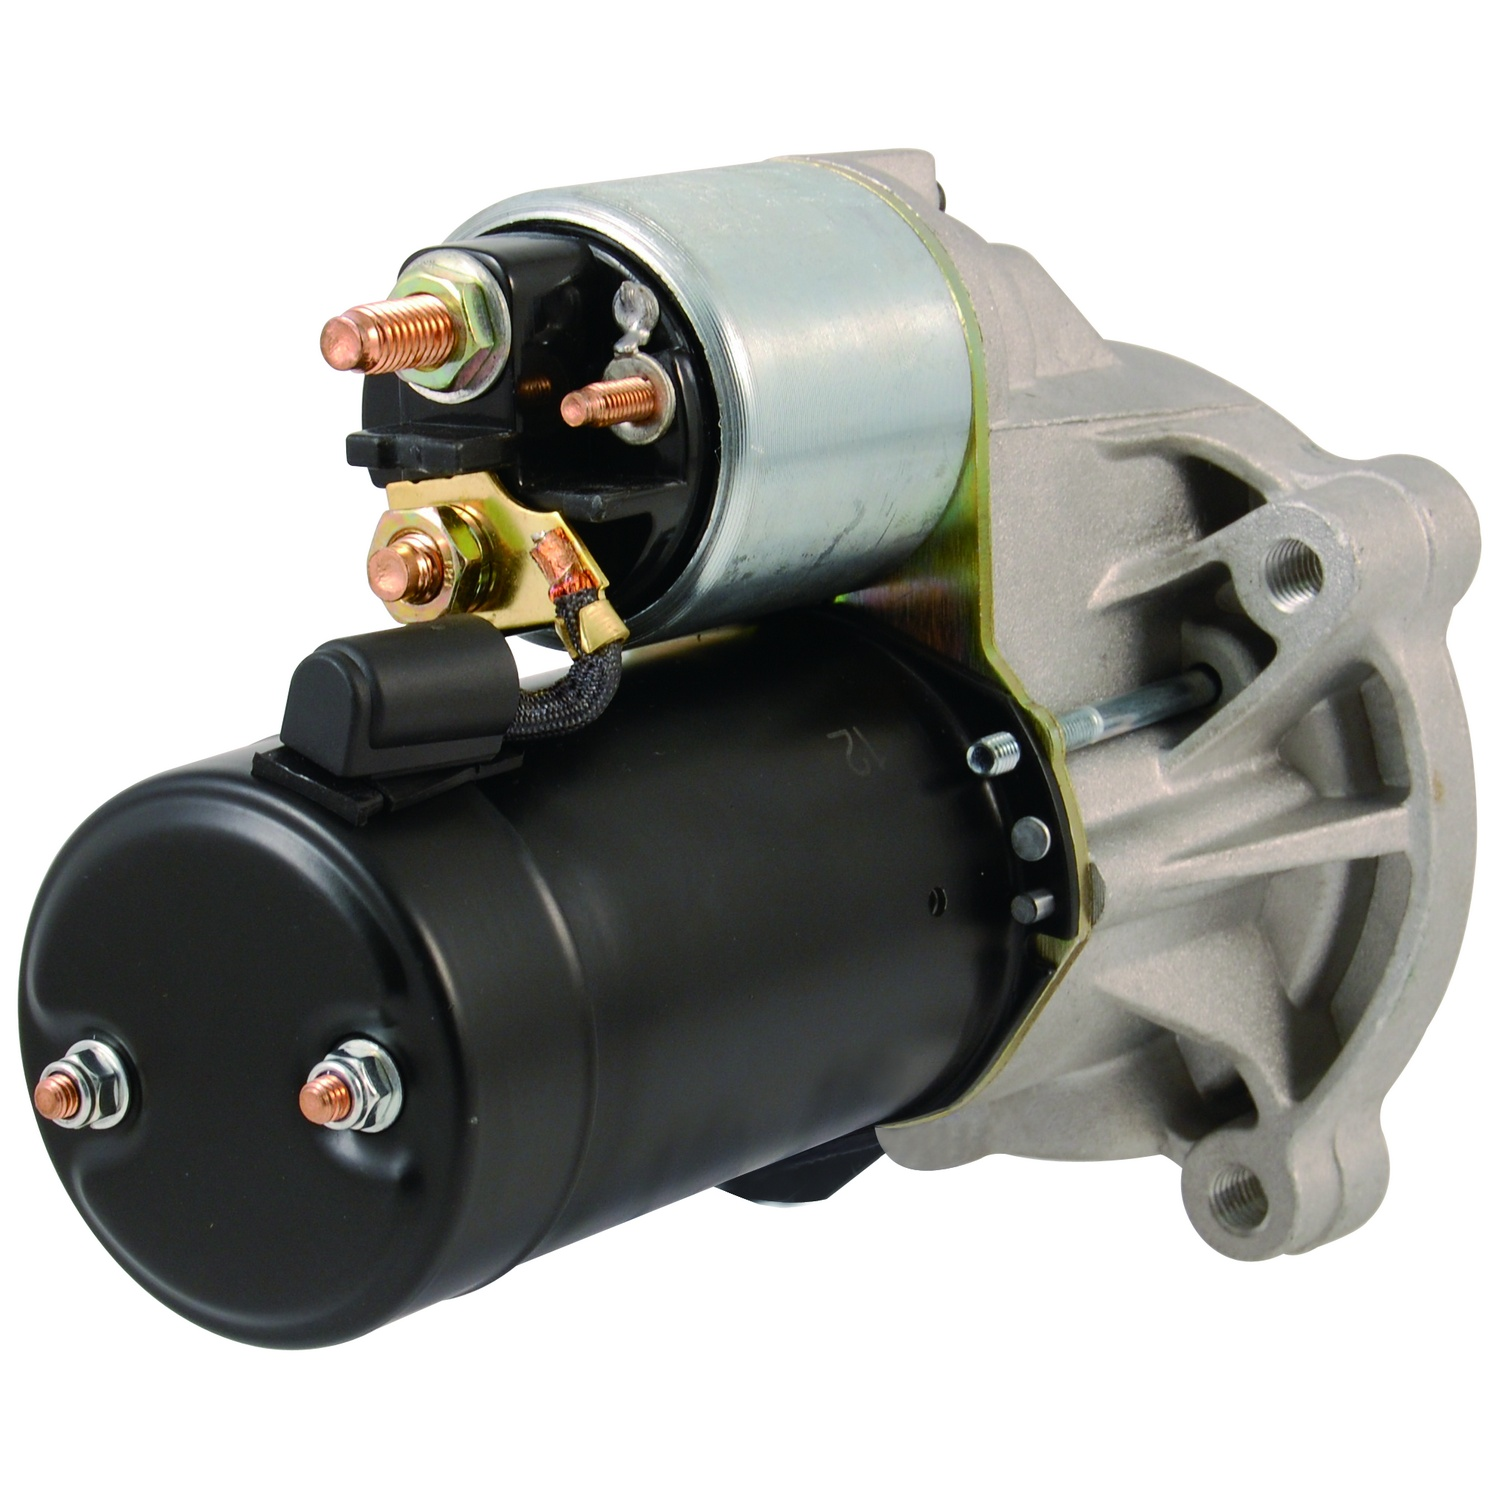 new starter motor fits european model citroen c4 picasso c5 break c8 0986021600 ebay. Black Bedroom Furniture Sets. Home Design Ideas